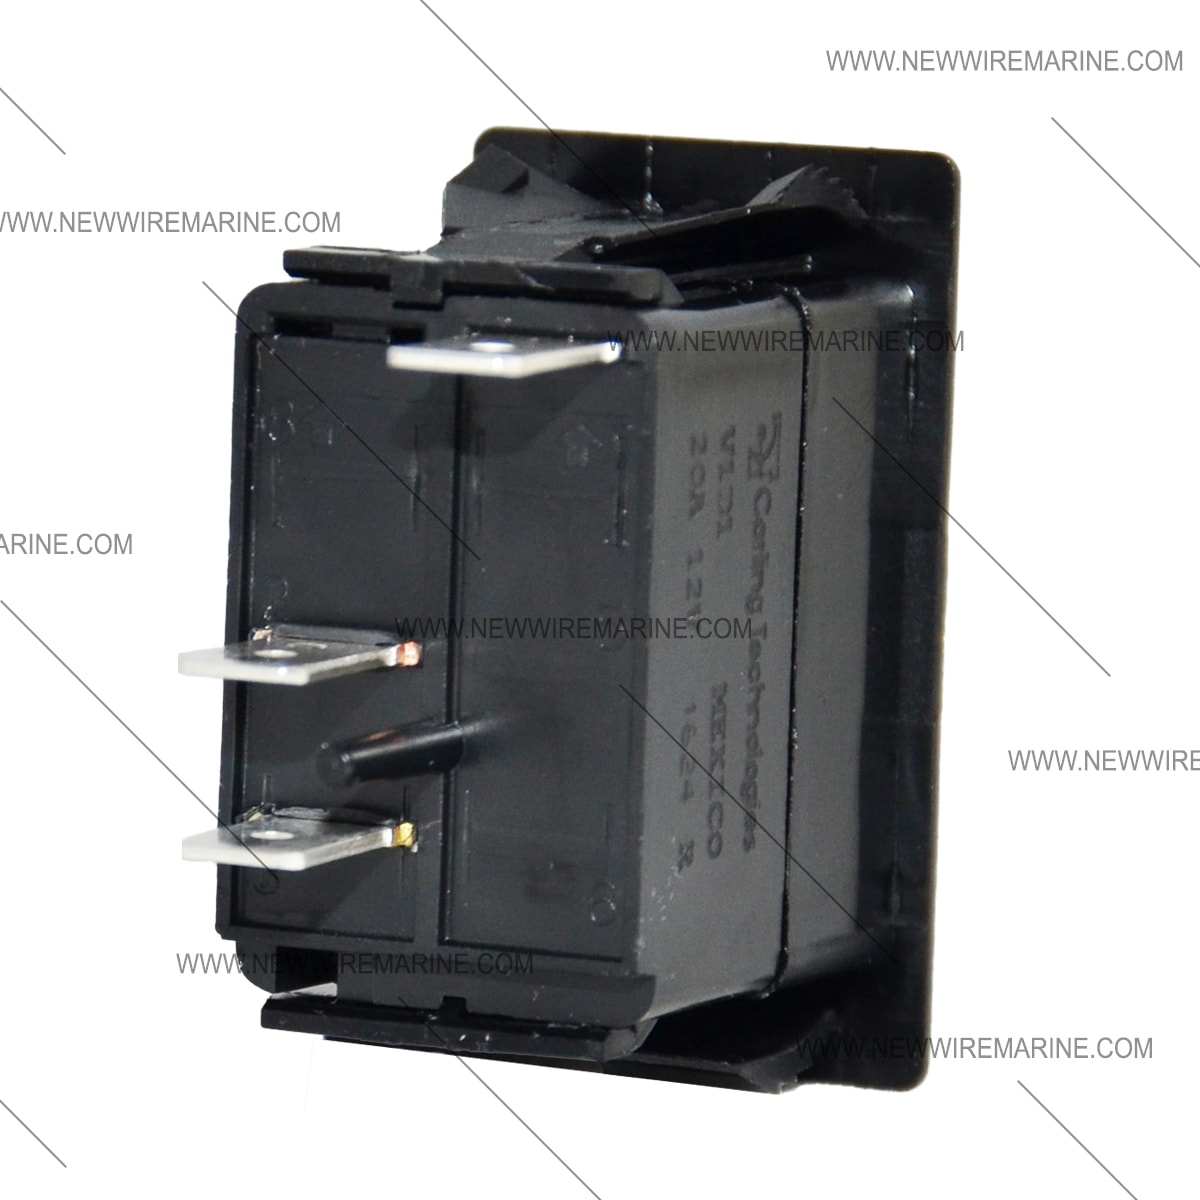 Carling Contura Rocker Switch Wiring Diagram | Wiring Diagram - Carling Rocker Switch Wiring Diagram